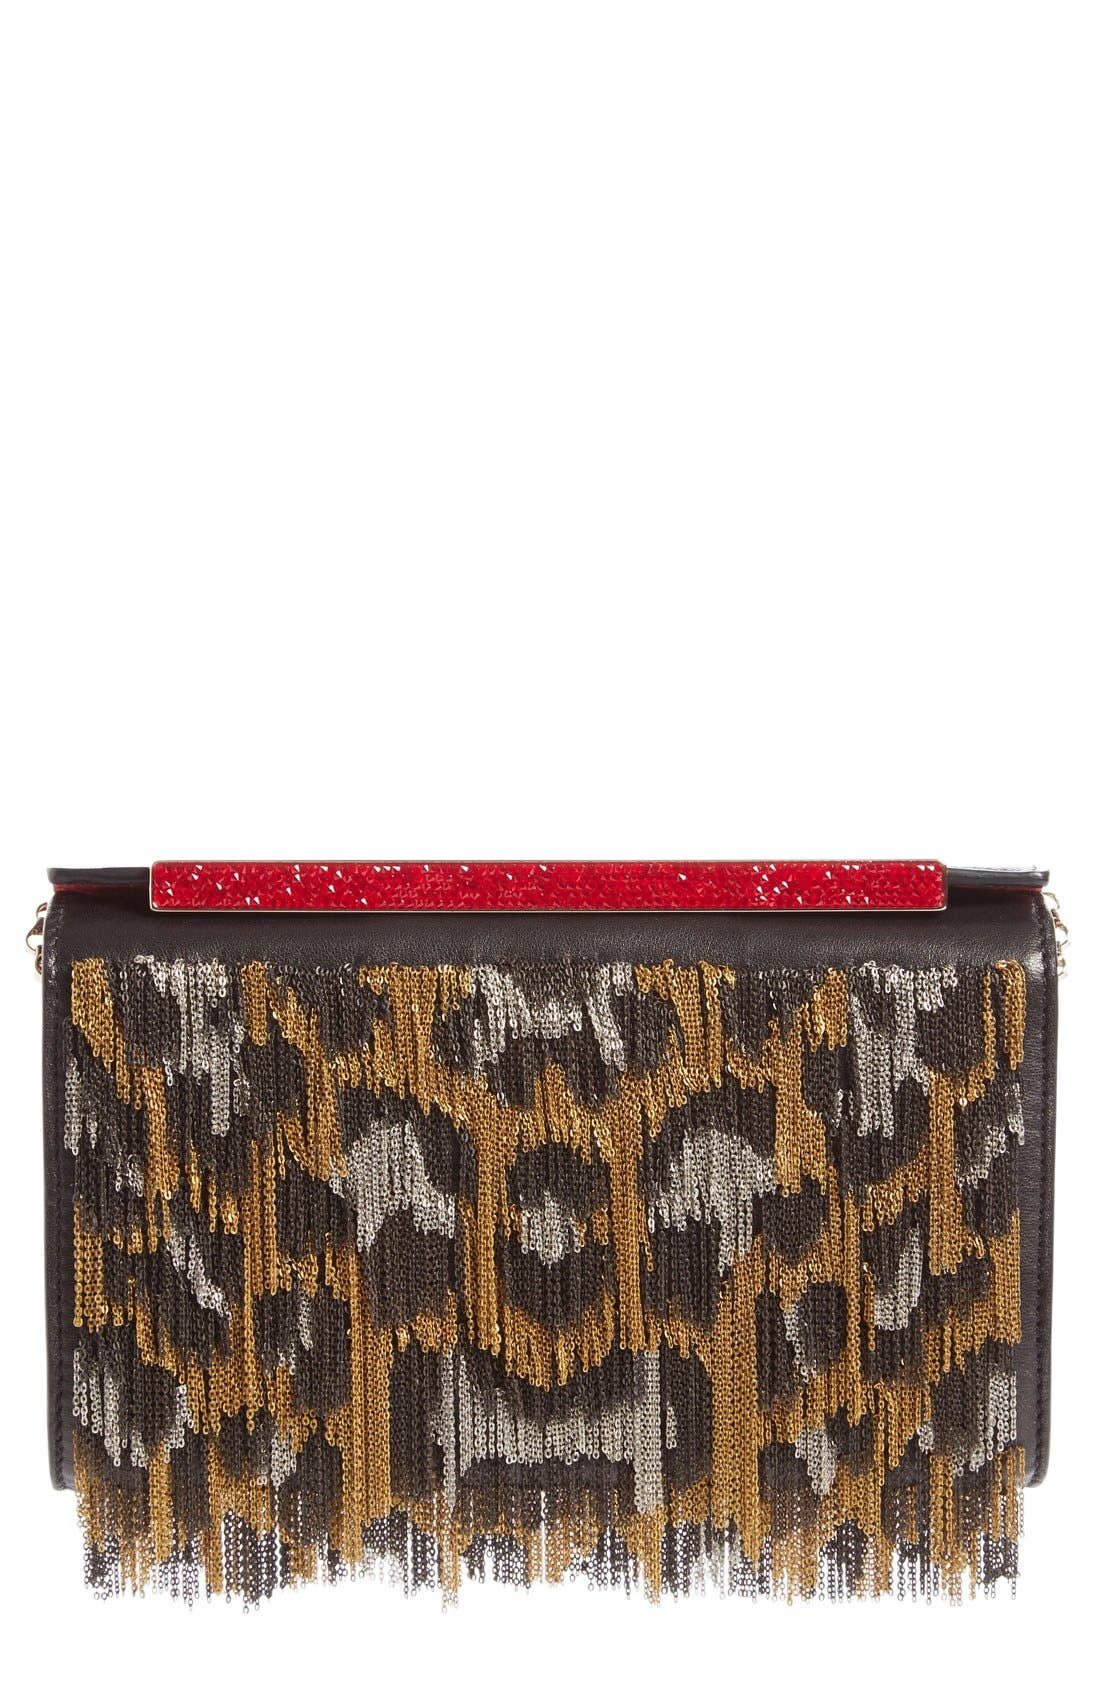 Main Image - Christian Louboutin Vanité Metallic Leopard Leather Clutch